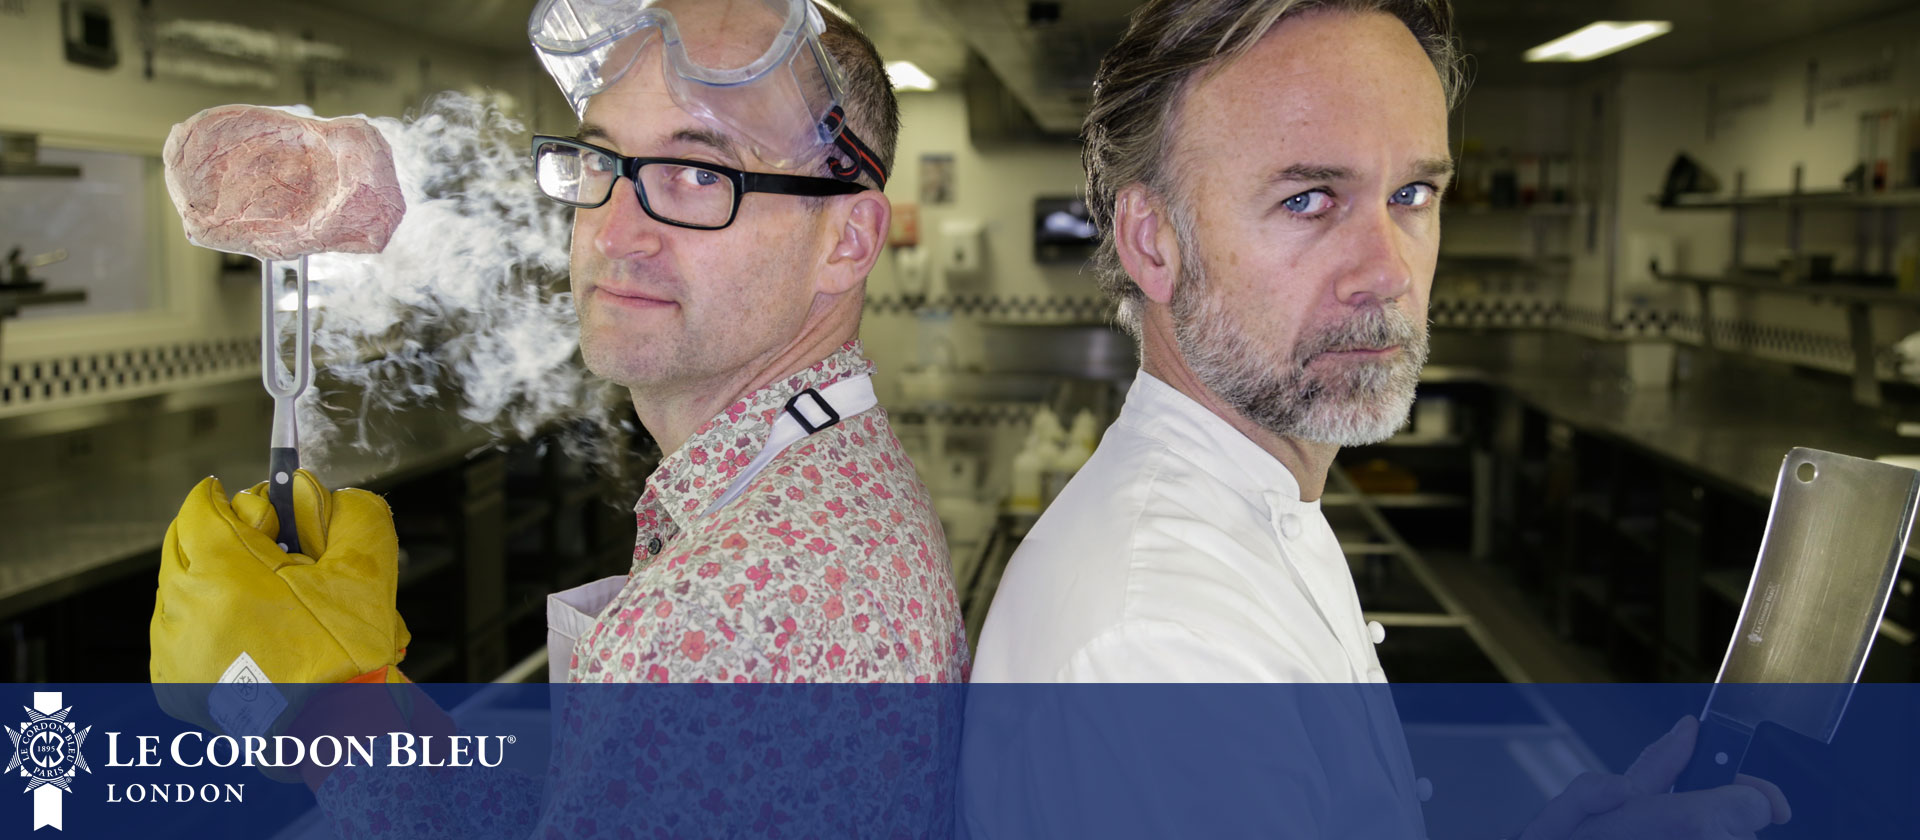 Chef vs Science BBC Four programme at Le Cordon Bleu London